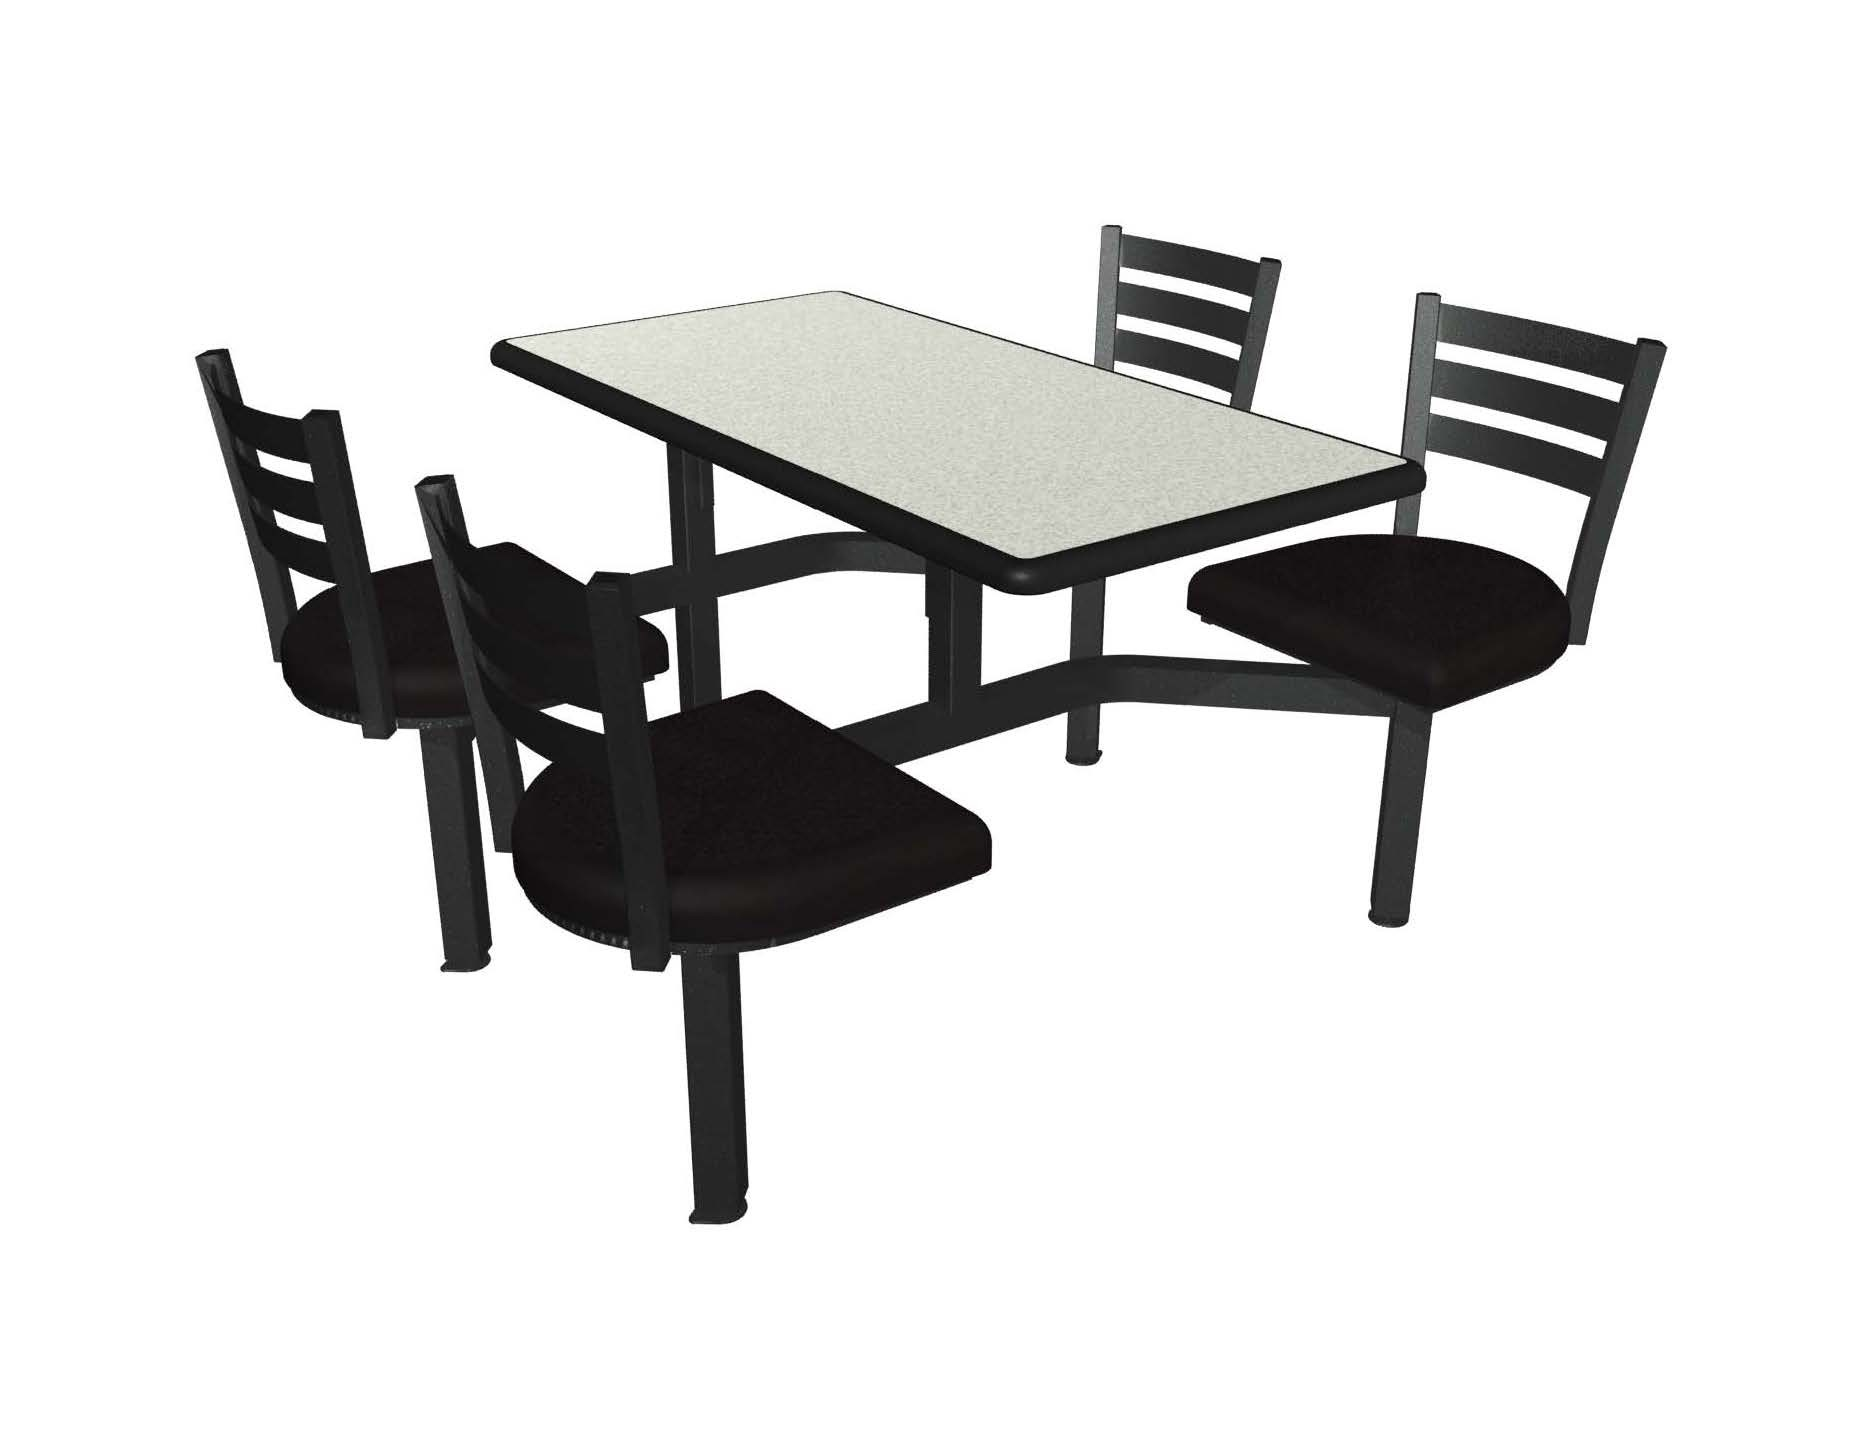 Dove Grey laminate table top, Black Dur-A-Edge, Quest chairhead with black vinyl seat